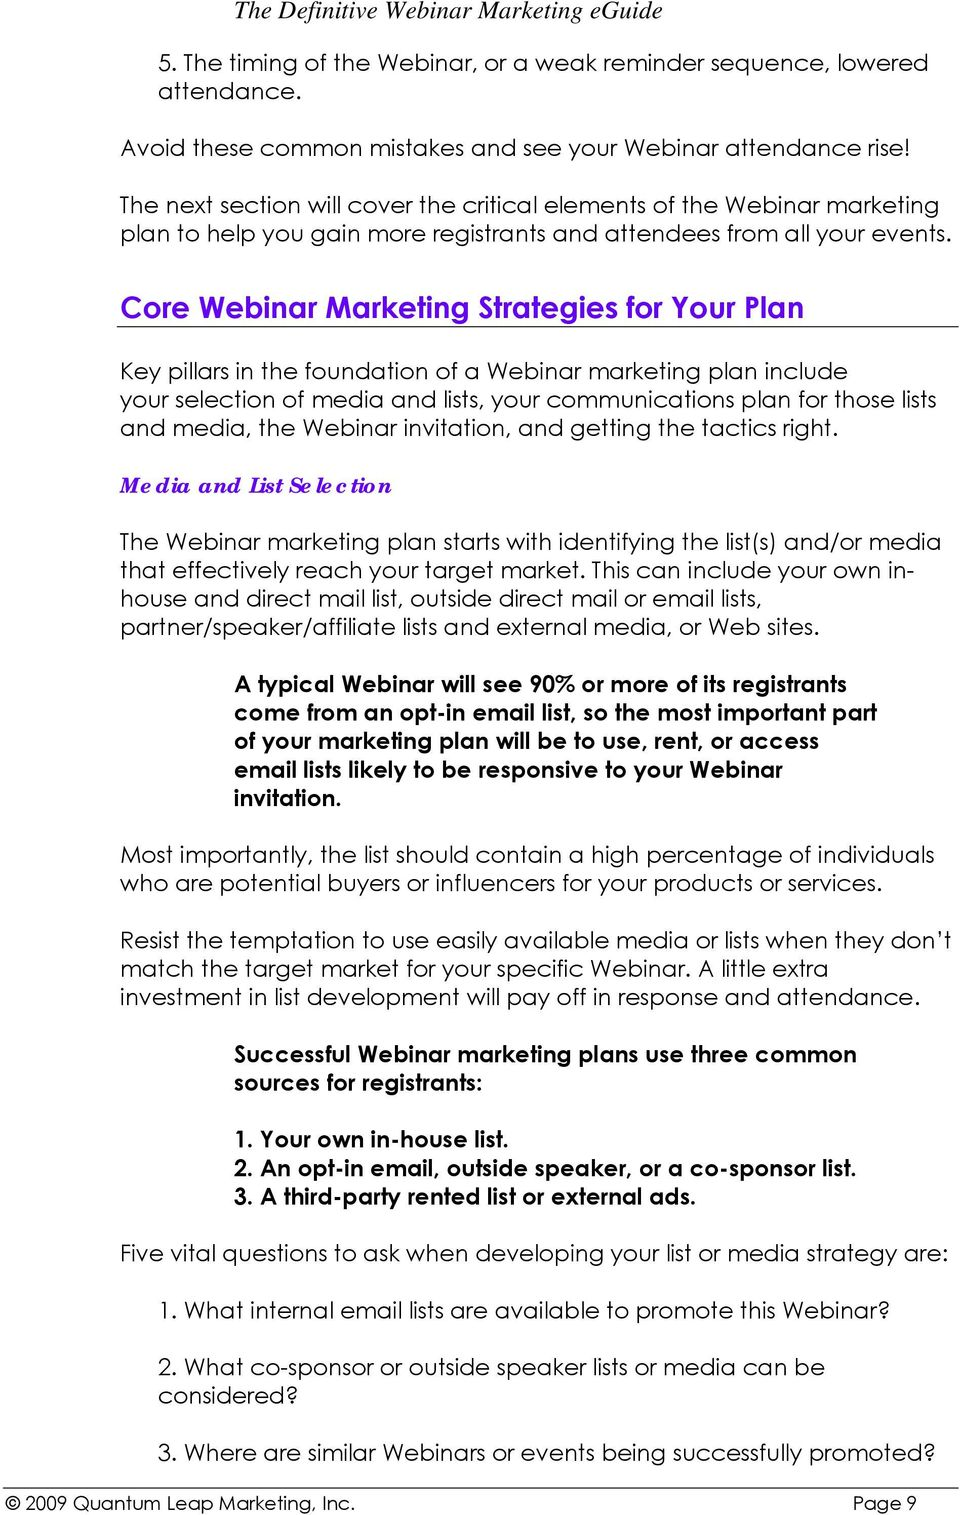 Core Webinar Marketing Strategies for Your Plan Key pillars in the foundation of a Webinar marketing plan include your selection of media and lists, your communications plan for those lists and